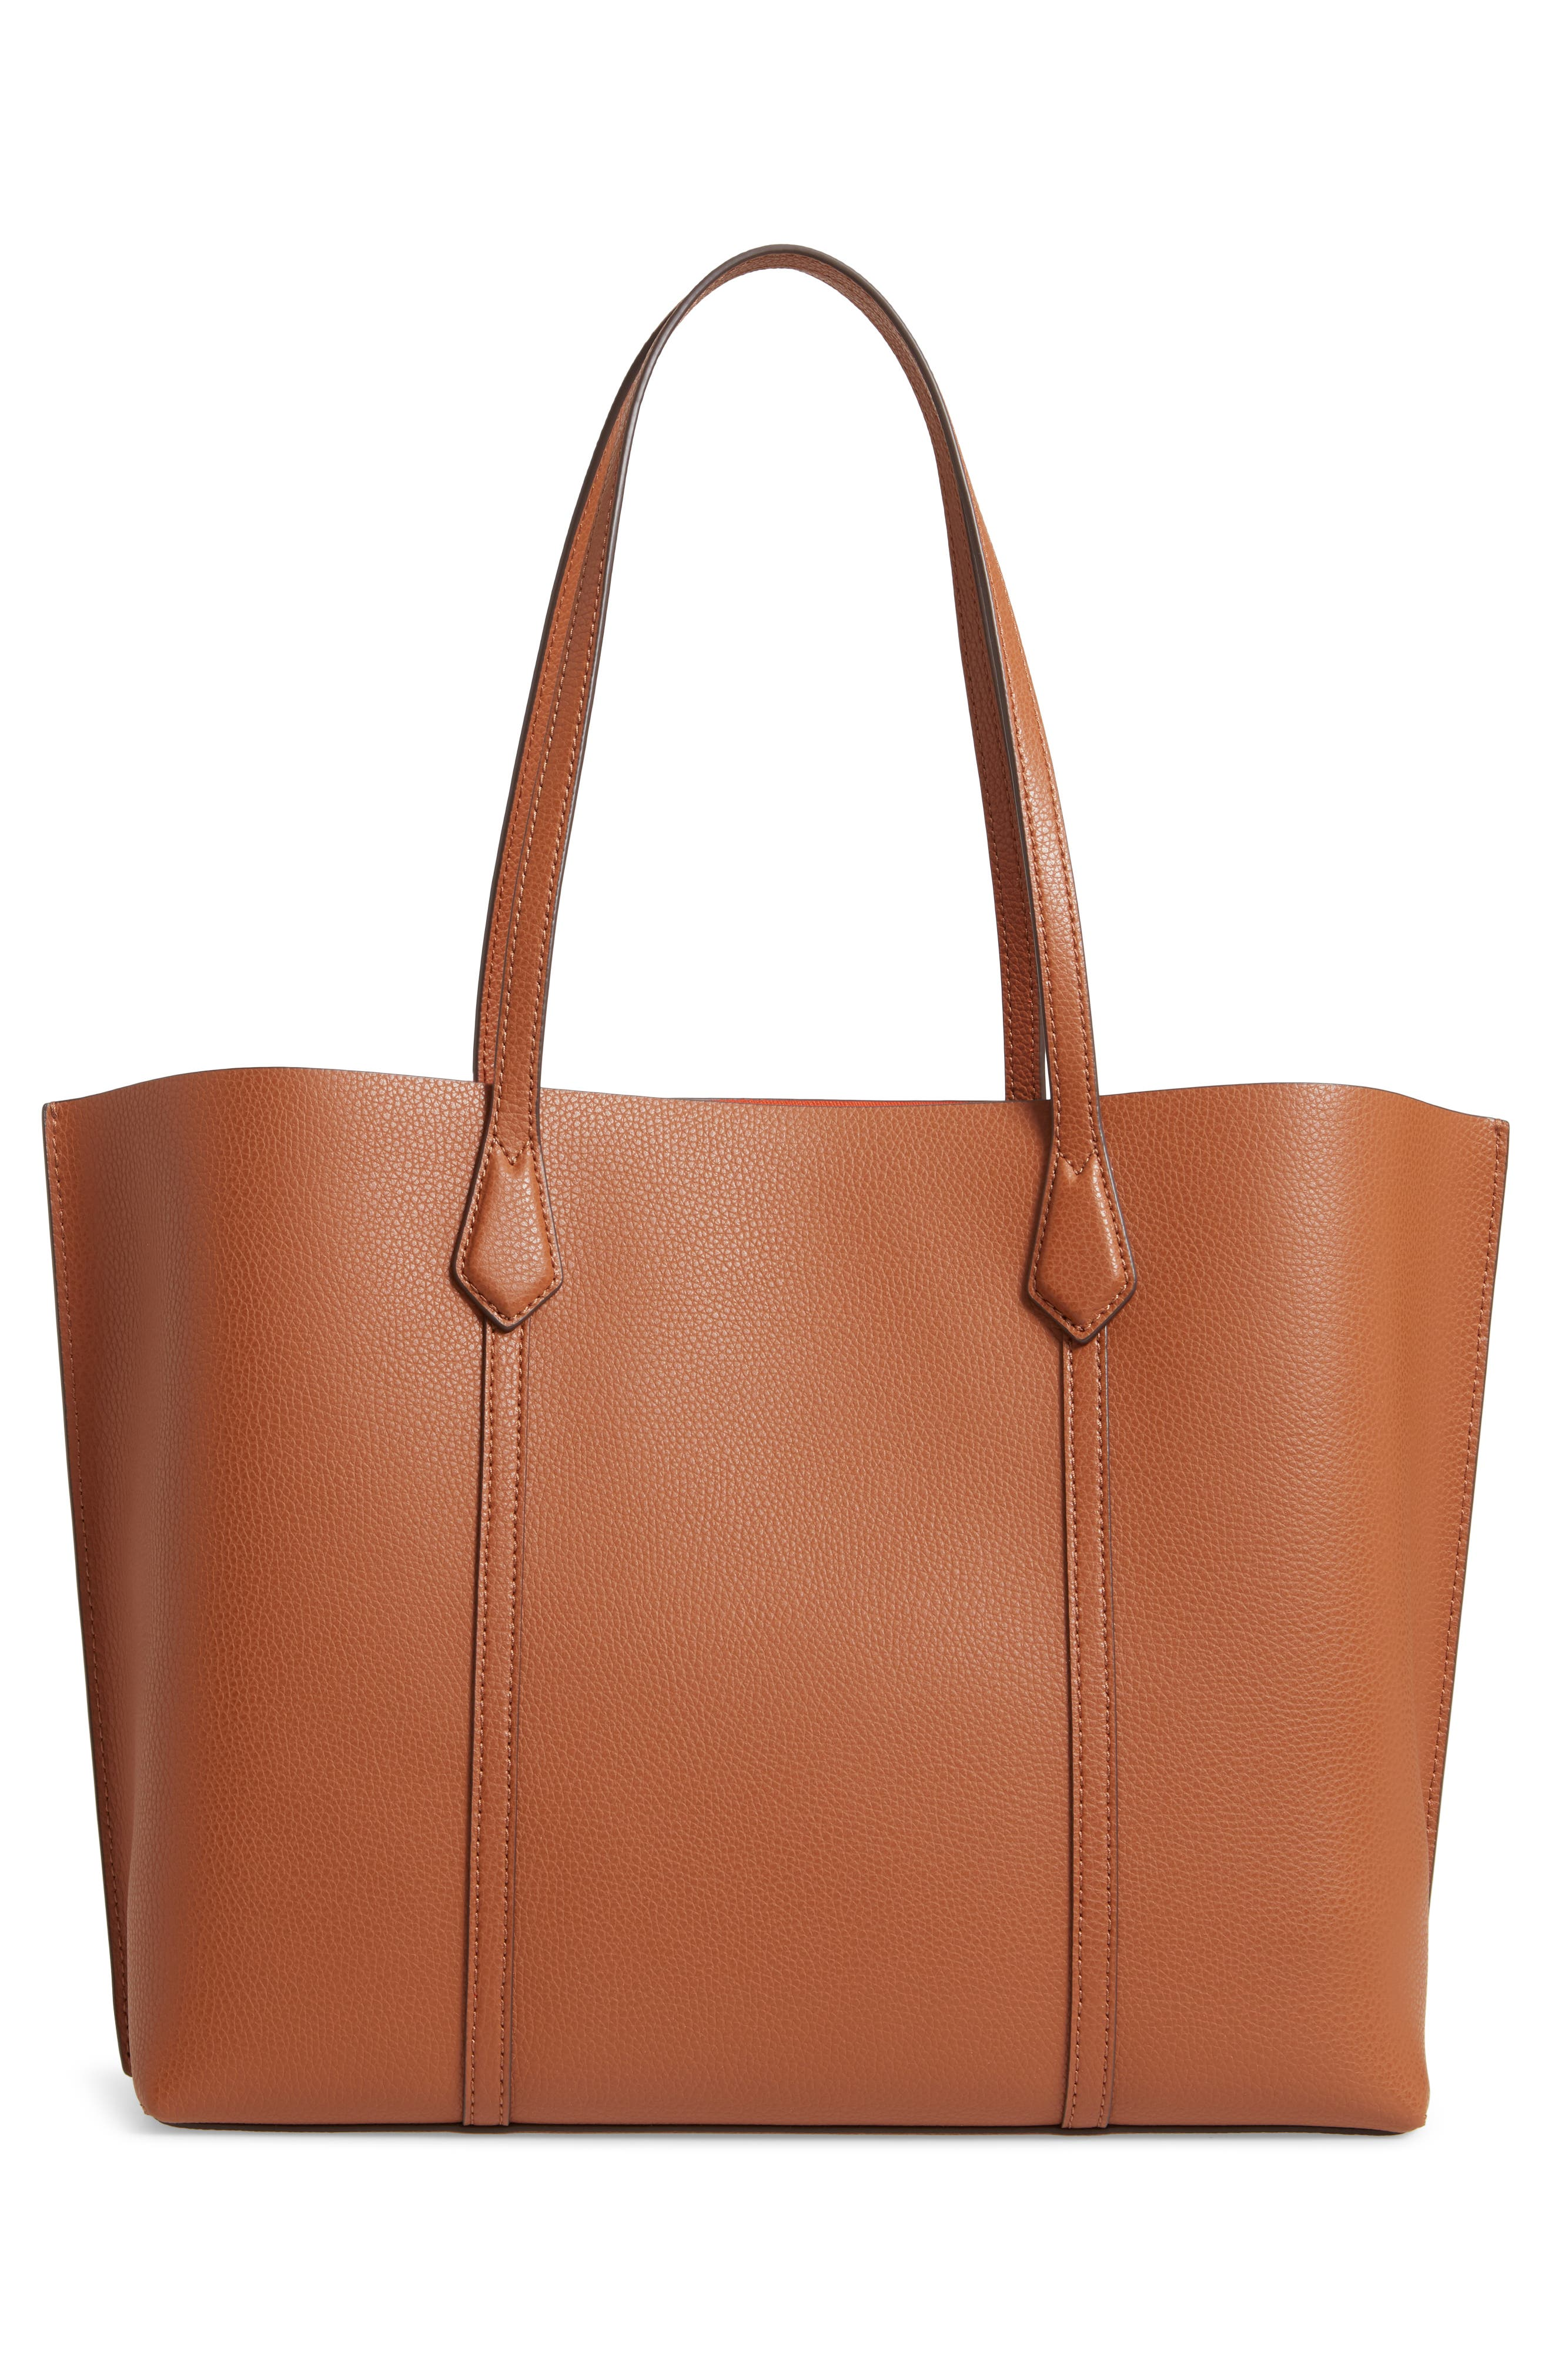 TORY BURCH, Perry Leather 13-Inch Laptop Tote, Alternate thumbnail 4, color, LIGHT UMBER